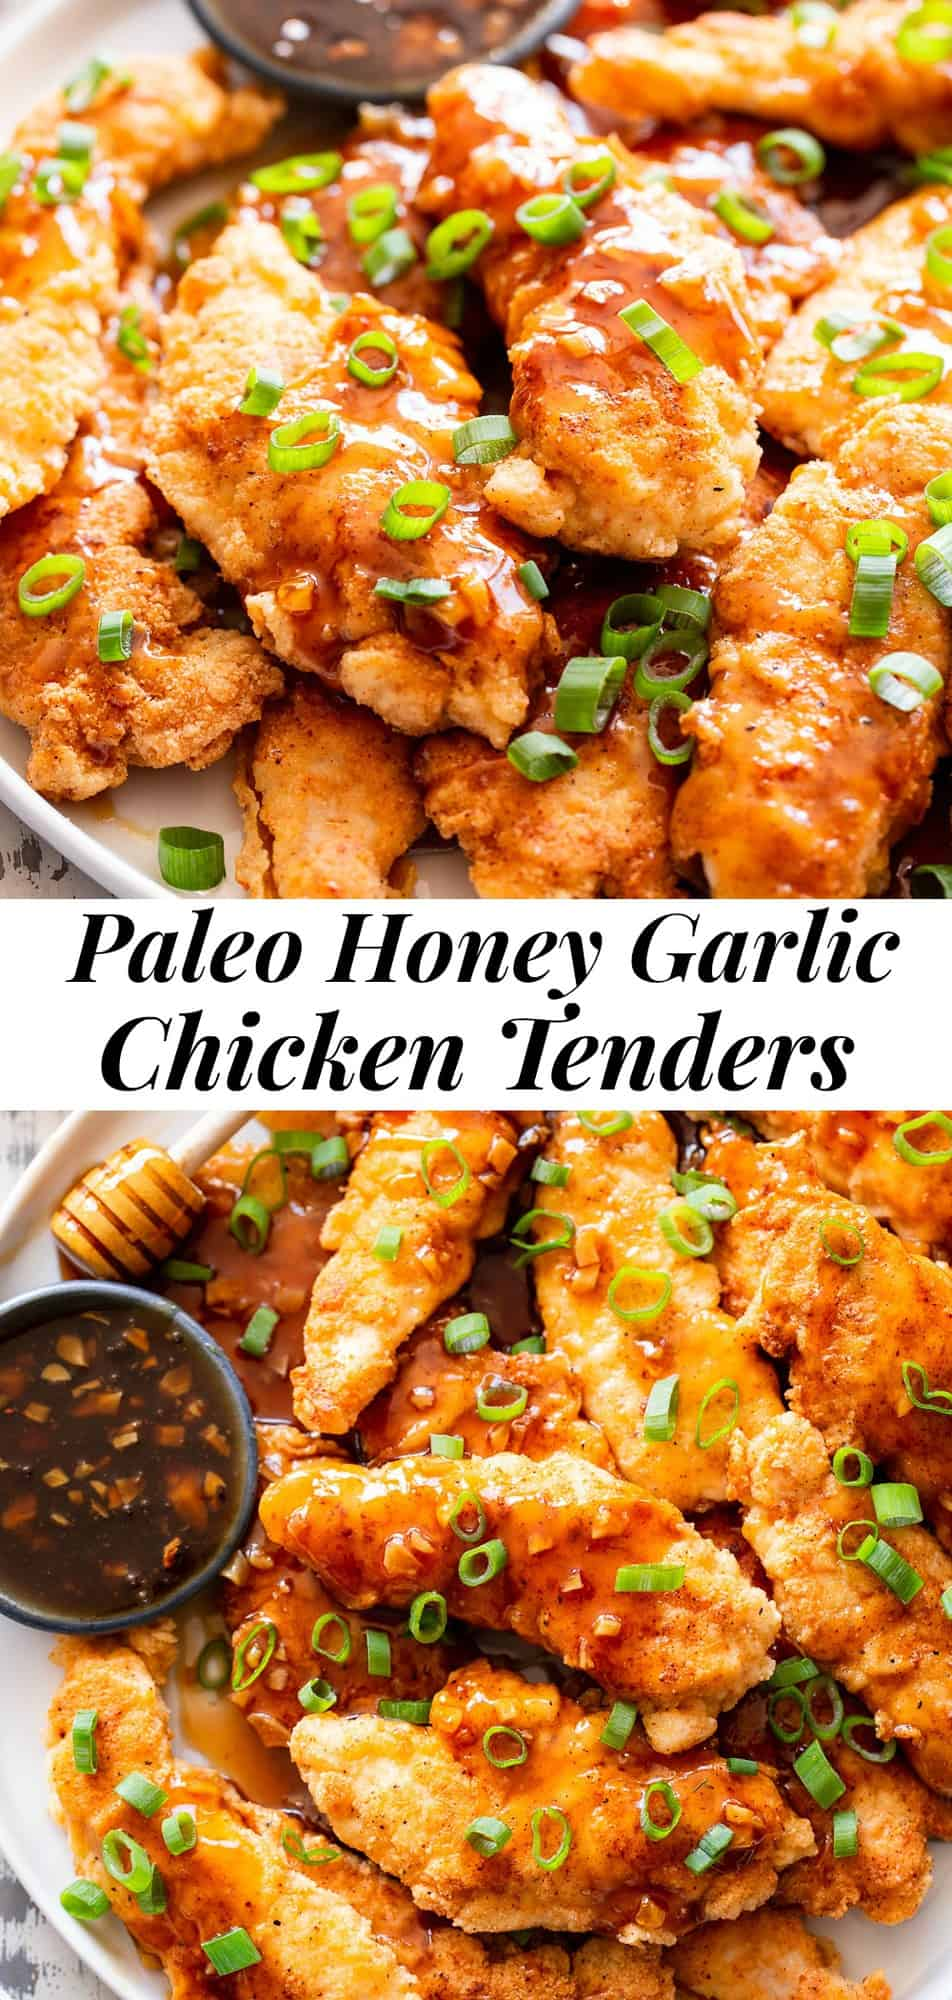 "These tasty honey garlic chicken tenders have a crispy grain free ""breading"" and a sweet and savory honey garlic sauce that's full of flavor! They're easy to throw together and perfect to serve alongside your favorite veggies, over cauliflower rice, or over a salad. Kid friendly, paleo, gluten free, and delicious! #paleo #glutenfree #Chicken #cleaneating"